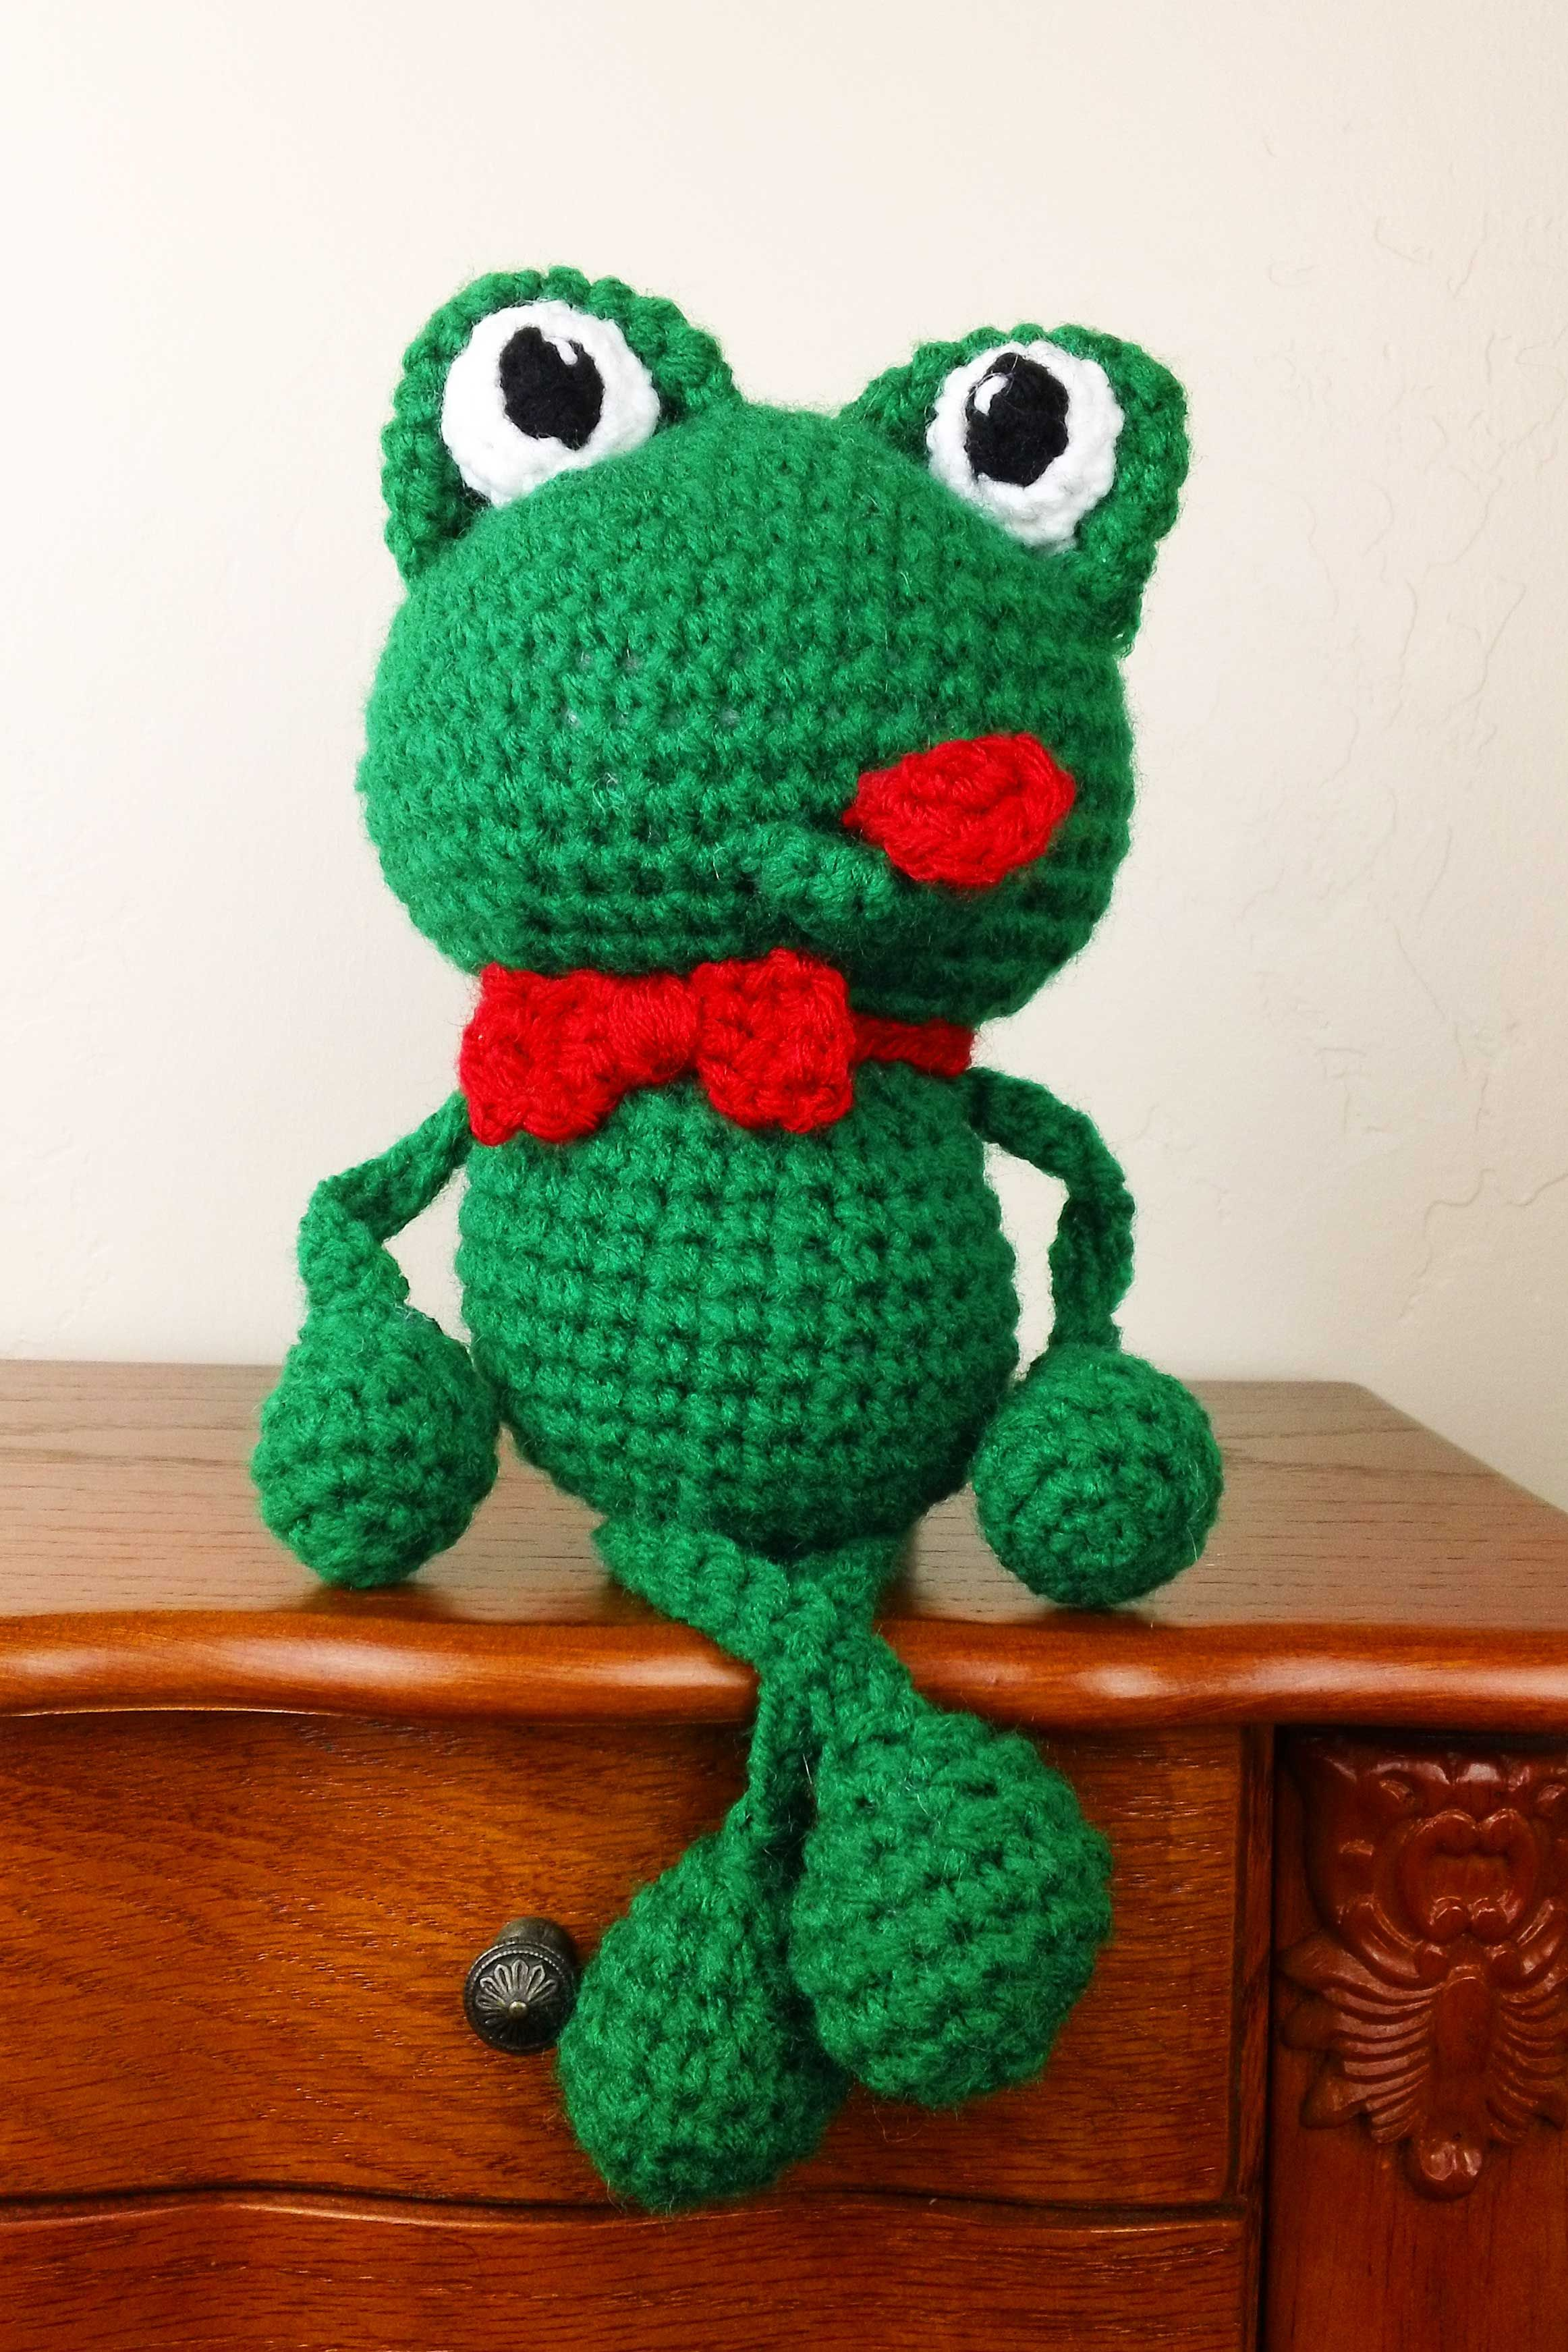 Crochet frog pattern frogs pinterest crochet frog frogs and the best free crochet frog pattern is found here at crochet guru bankloansurffo Image collections